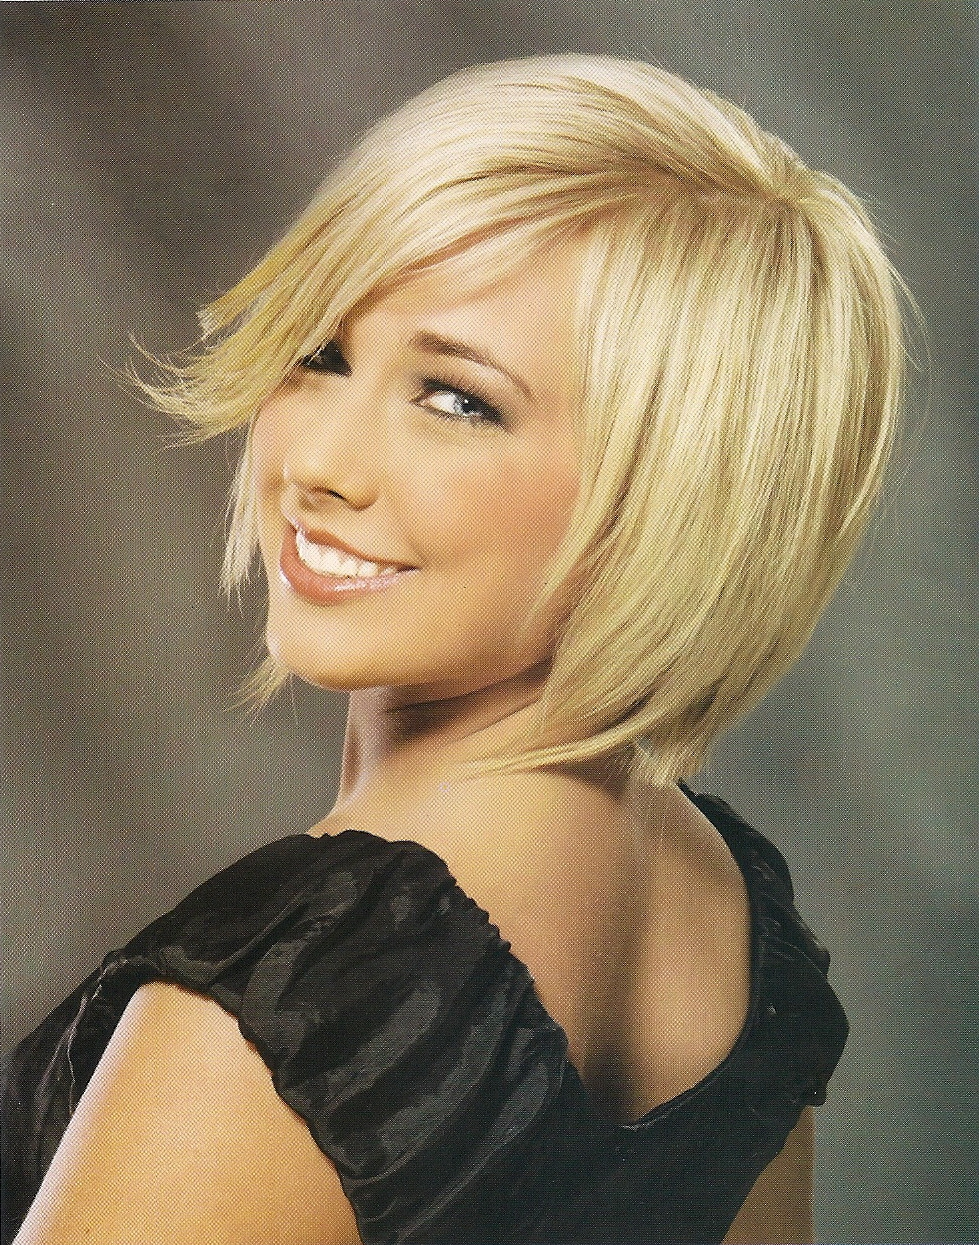 short hair styles layered blonde bob hairstyle pictures. Black Bedroom Furniture Sets. Home Design Ideas